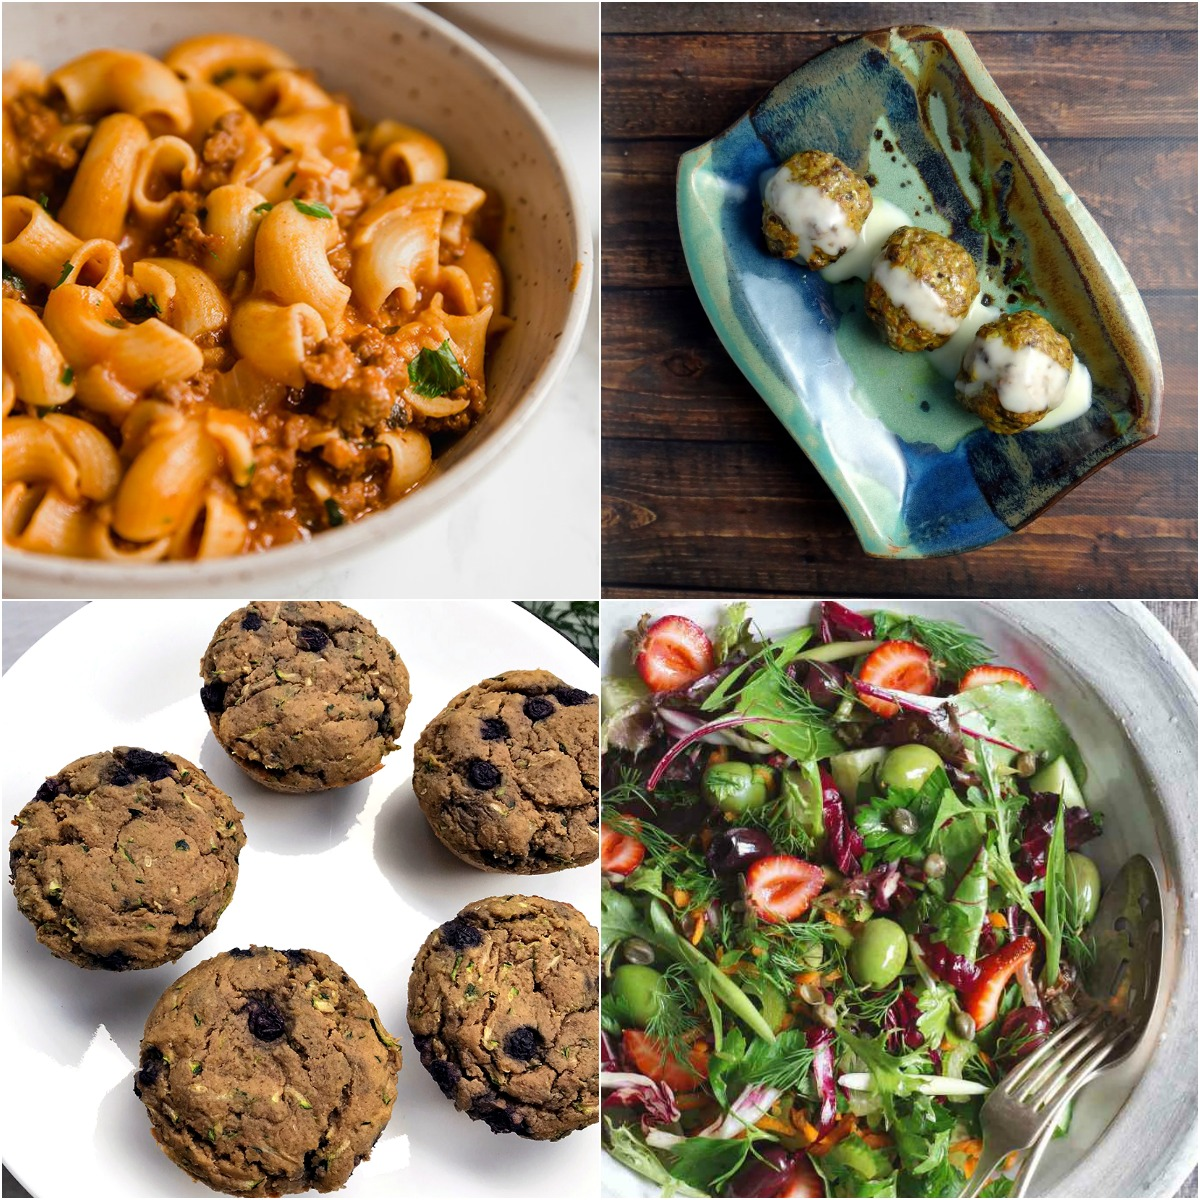 Paleo AIP Recipe Roundtable #332 | Phoenix Helix - *Featured Recipes: Copycat Hamburger Helper, Blueberry Zucchini Plantain Muffins, Moroccan Meatballs with Saffron Yogurt Dipping Sauce, and a Summer Salad